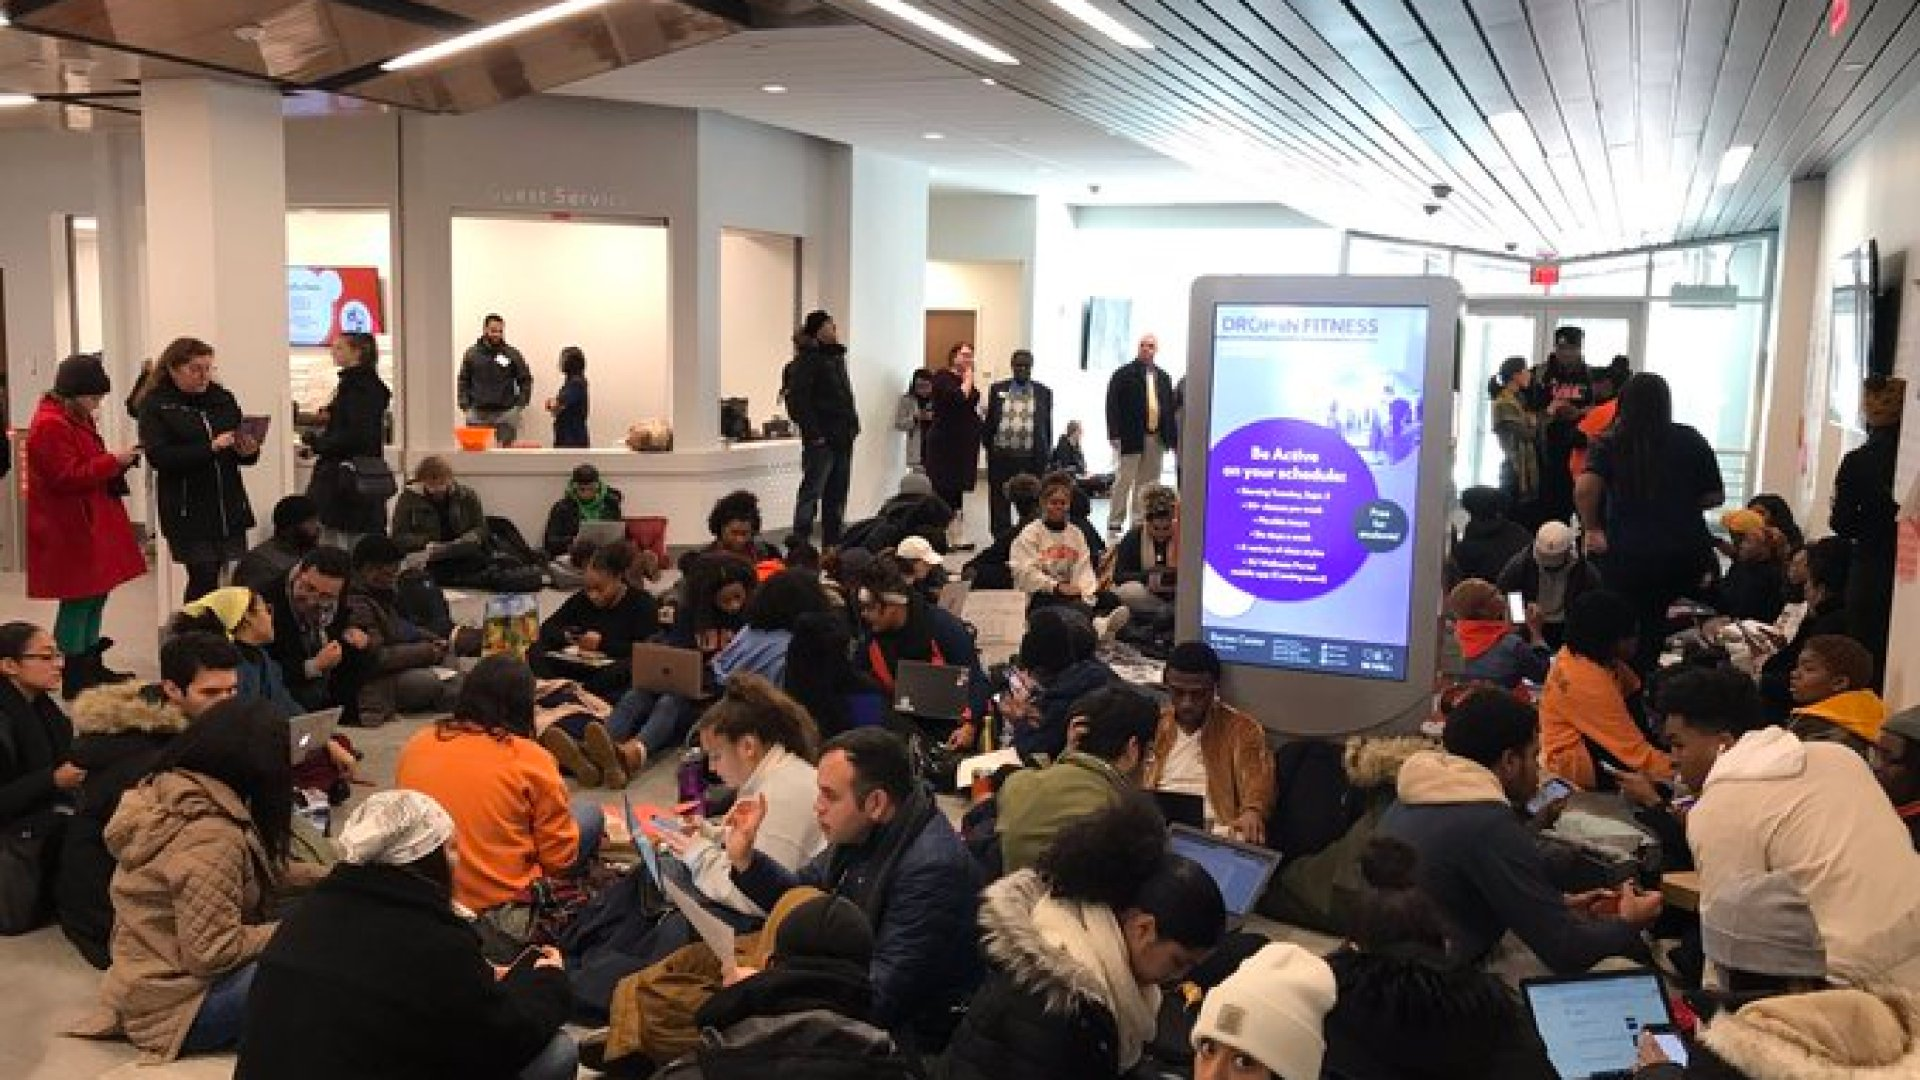 Students end occupation of Barnes Center on campus, now call for Chancellor's resignation